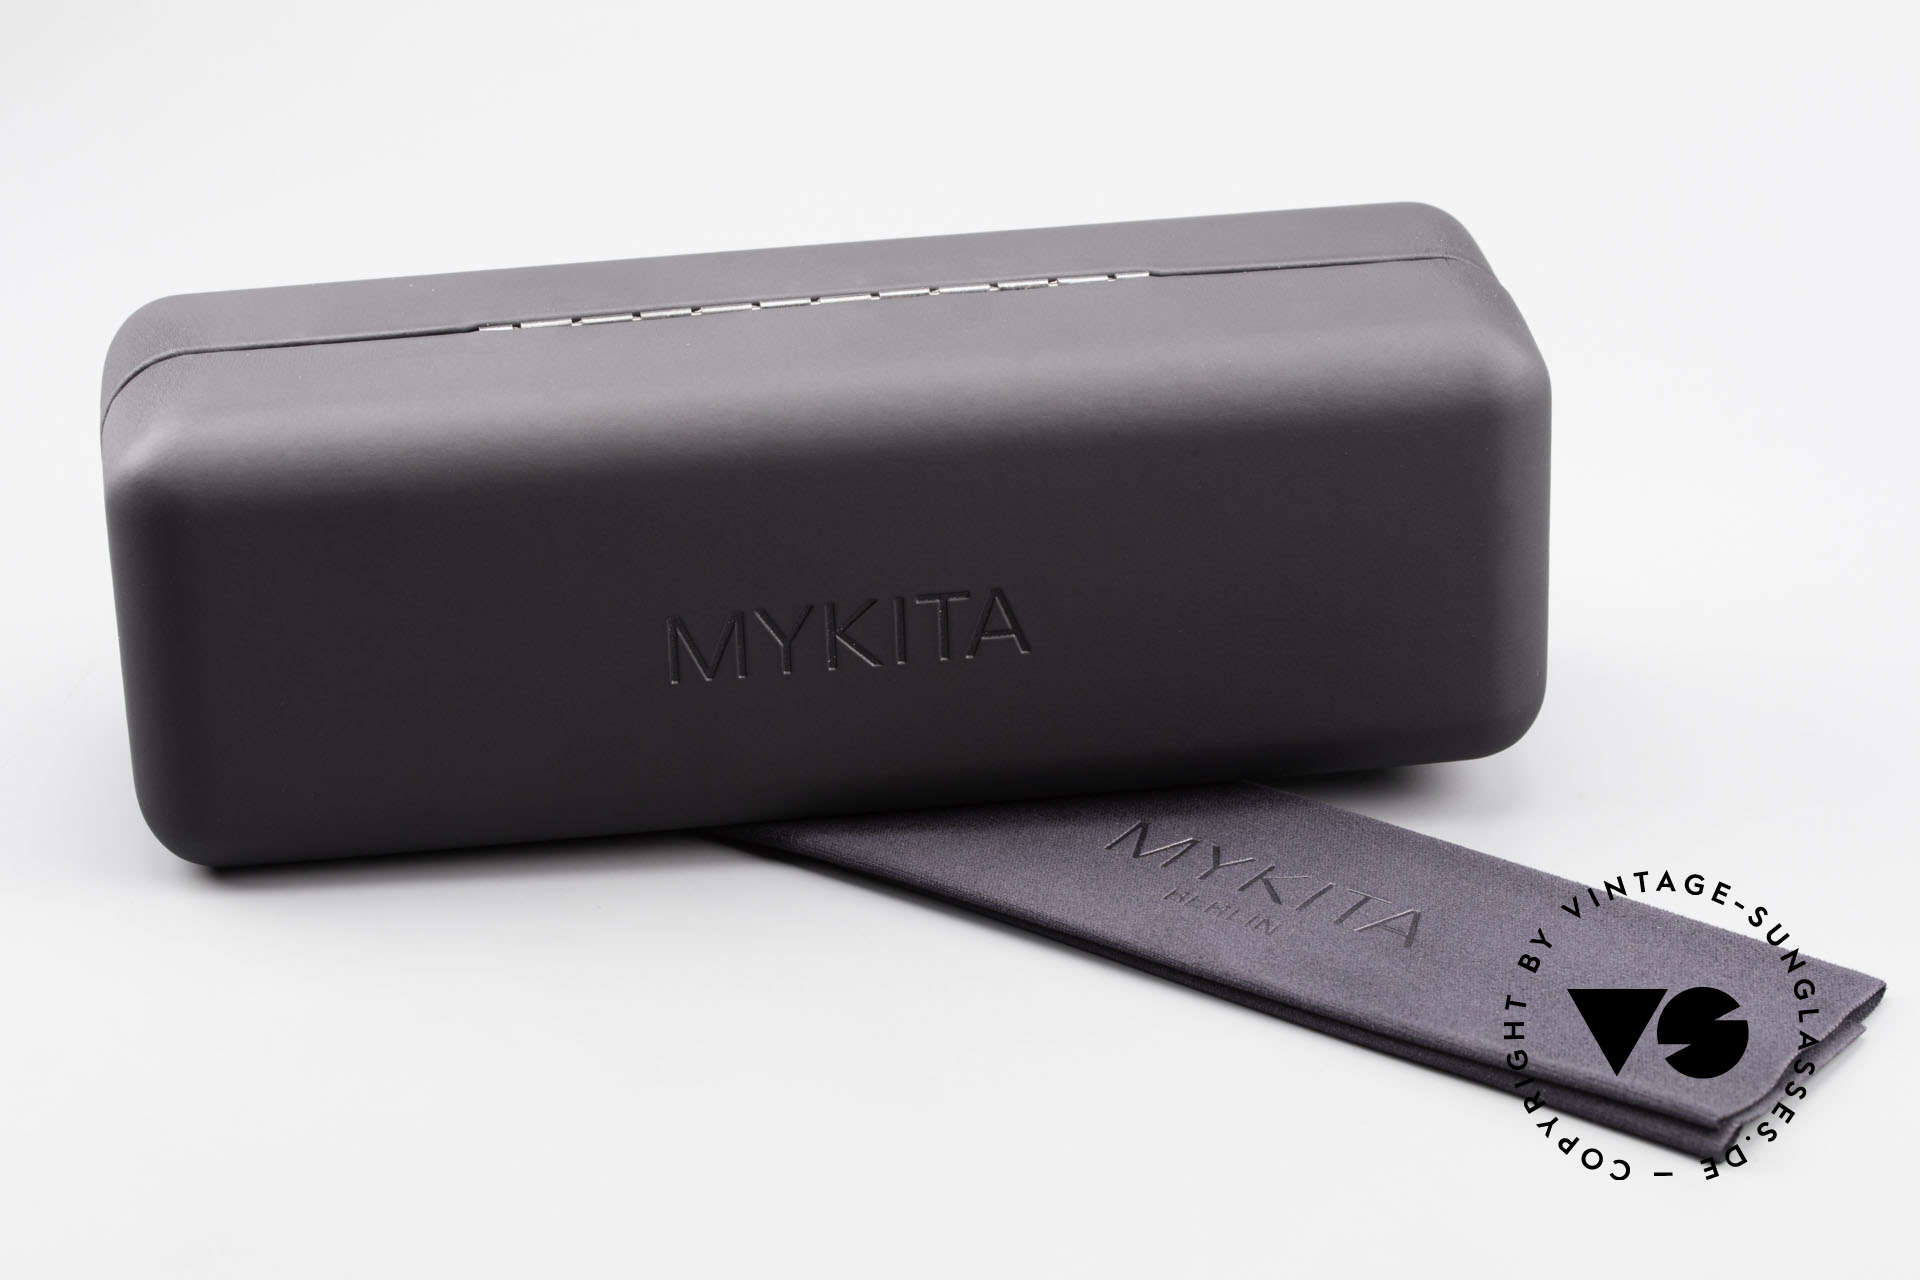 Mykita Rock No1 Collection Sunglasses 2009, Size: large, Made for Men